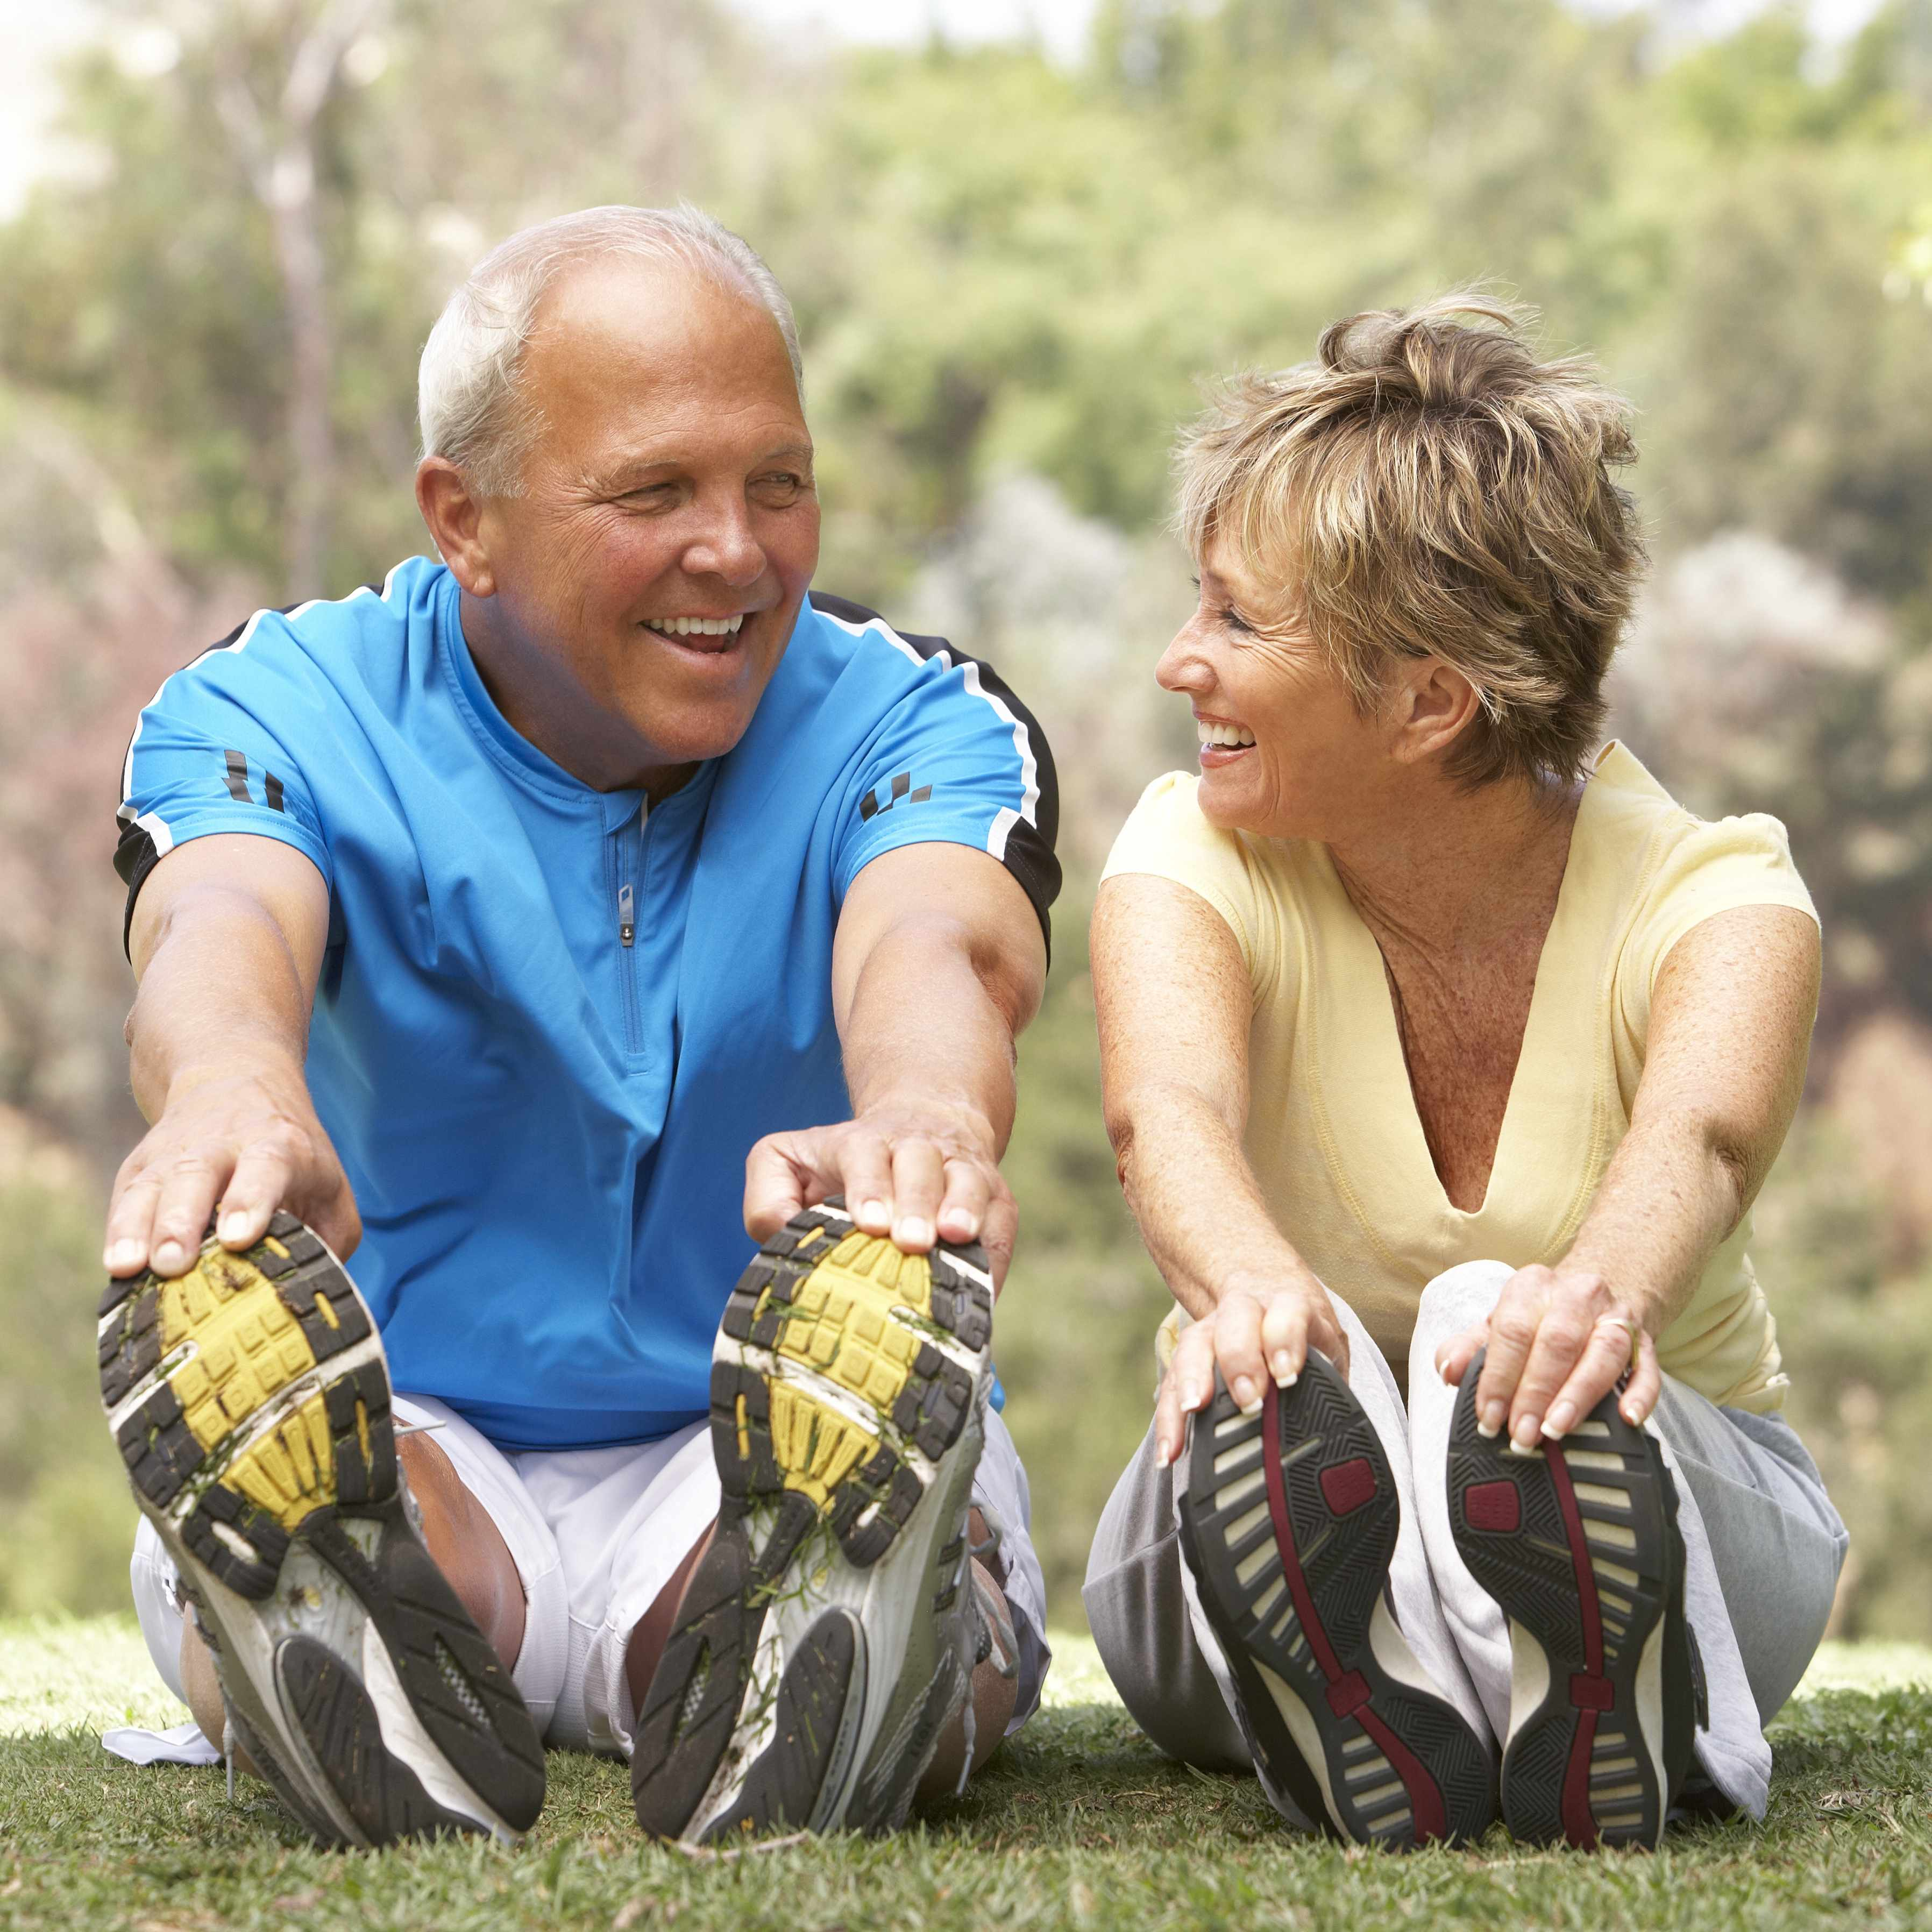 a middle-aged man and woman smiling and exercising in the park